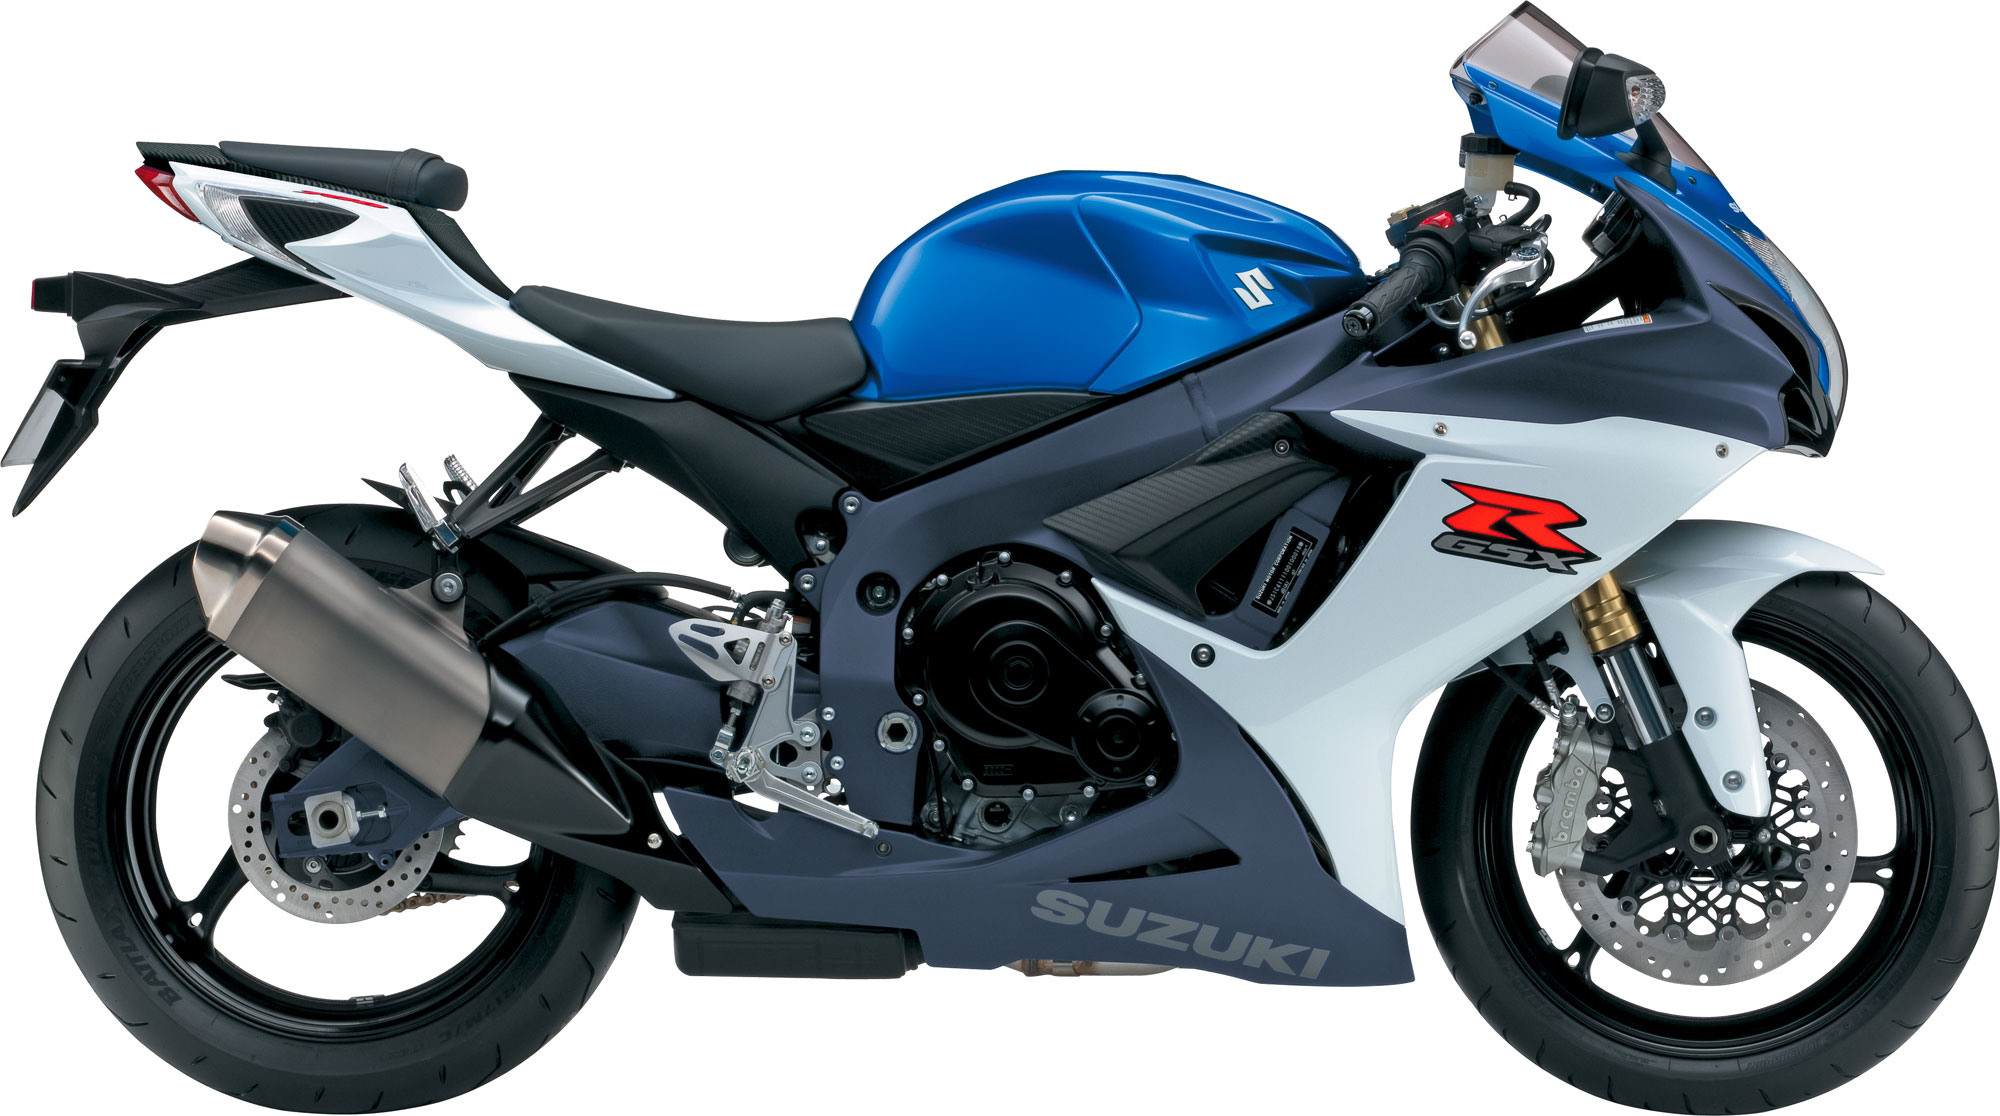 2012 suzuki gsx r750 review. Black Bedroom Furniture Sets. Home Design Ideas